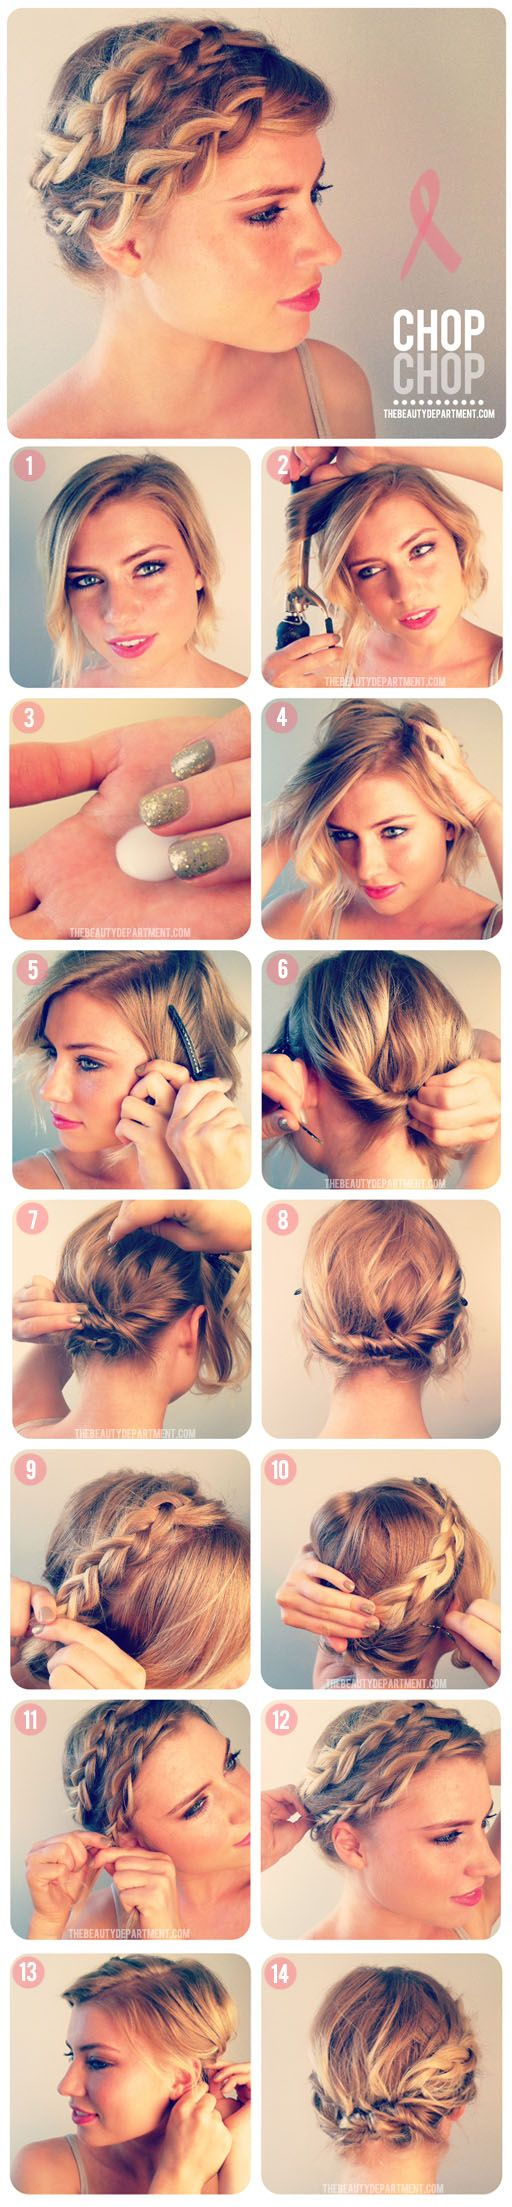 Believe it or not, this braided look works for even chopped hair.